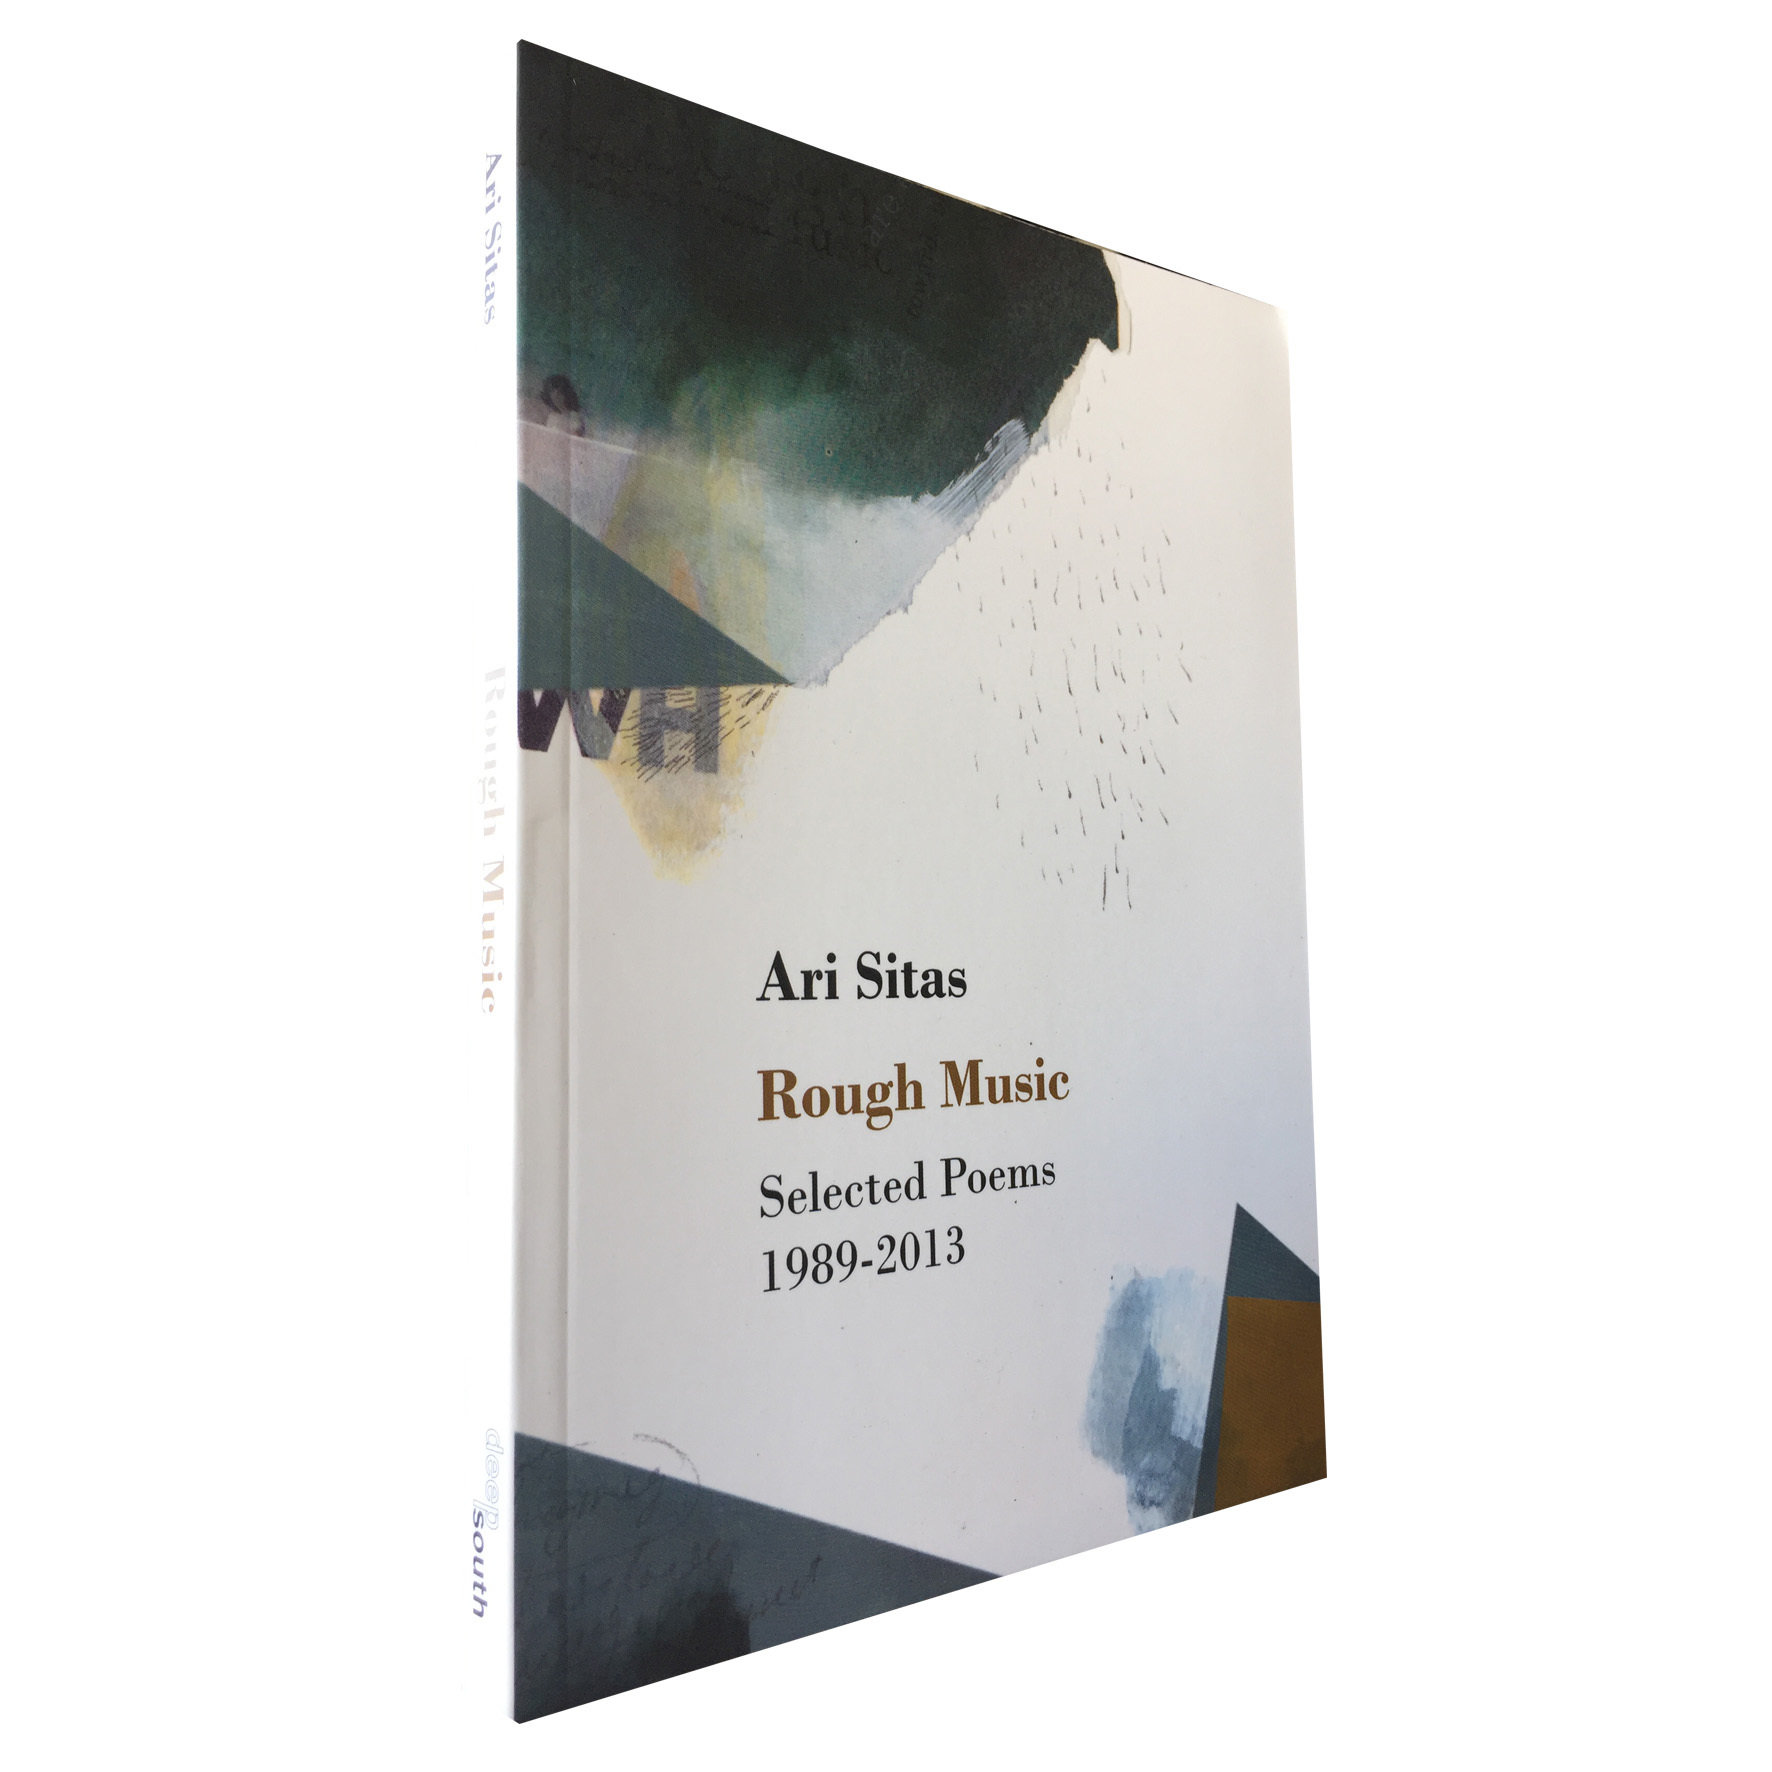 Rough Music: Selected Poems 1989 - 2013 by Ari Sitas (Deep South Books) DS13